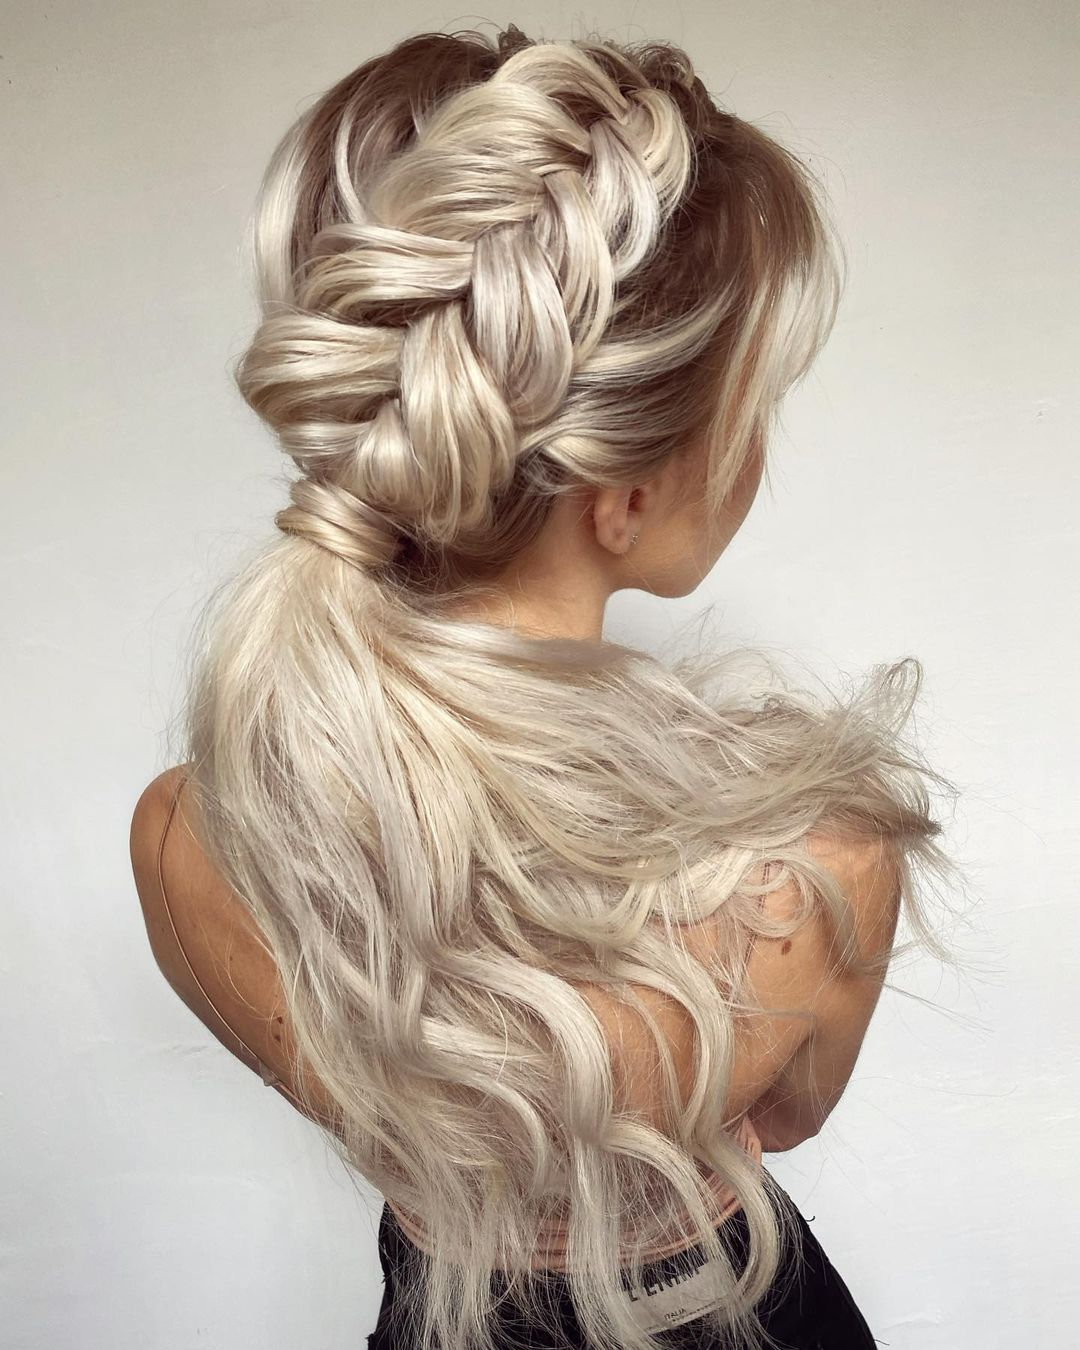 Blonde Braid and Pony Style